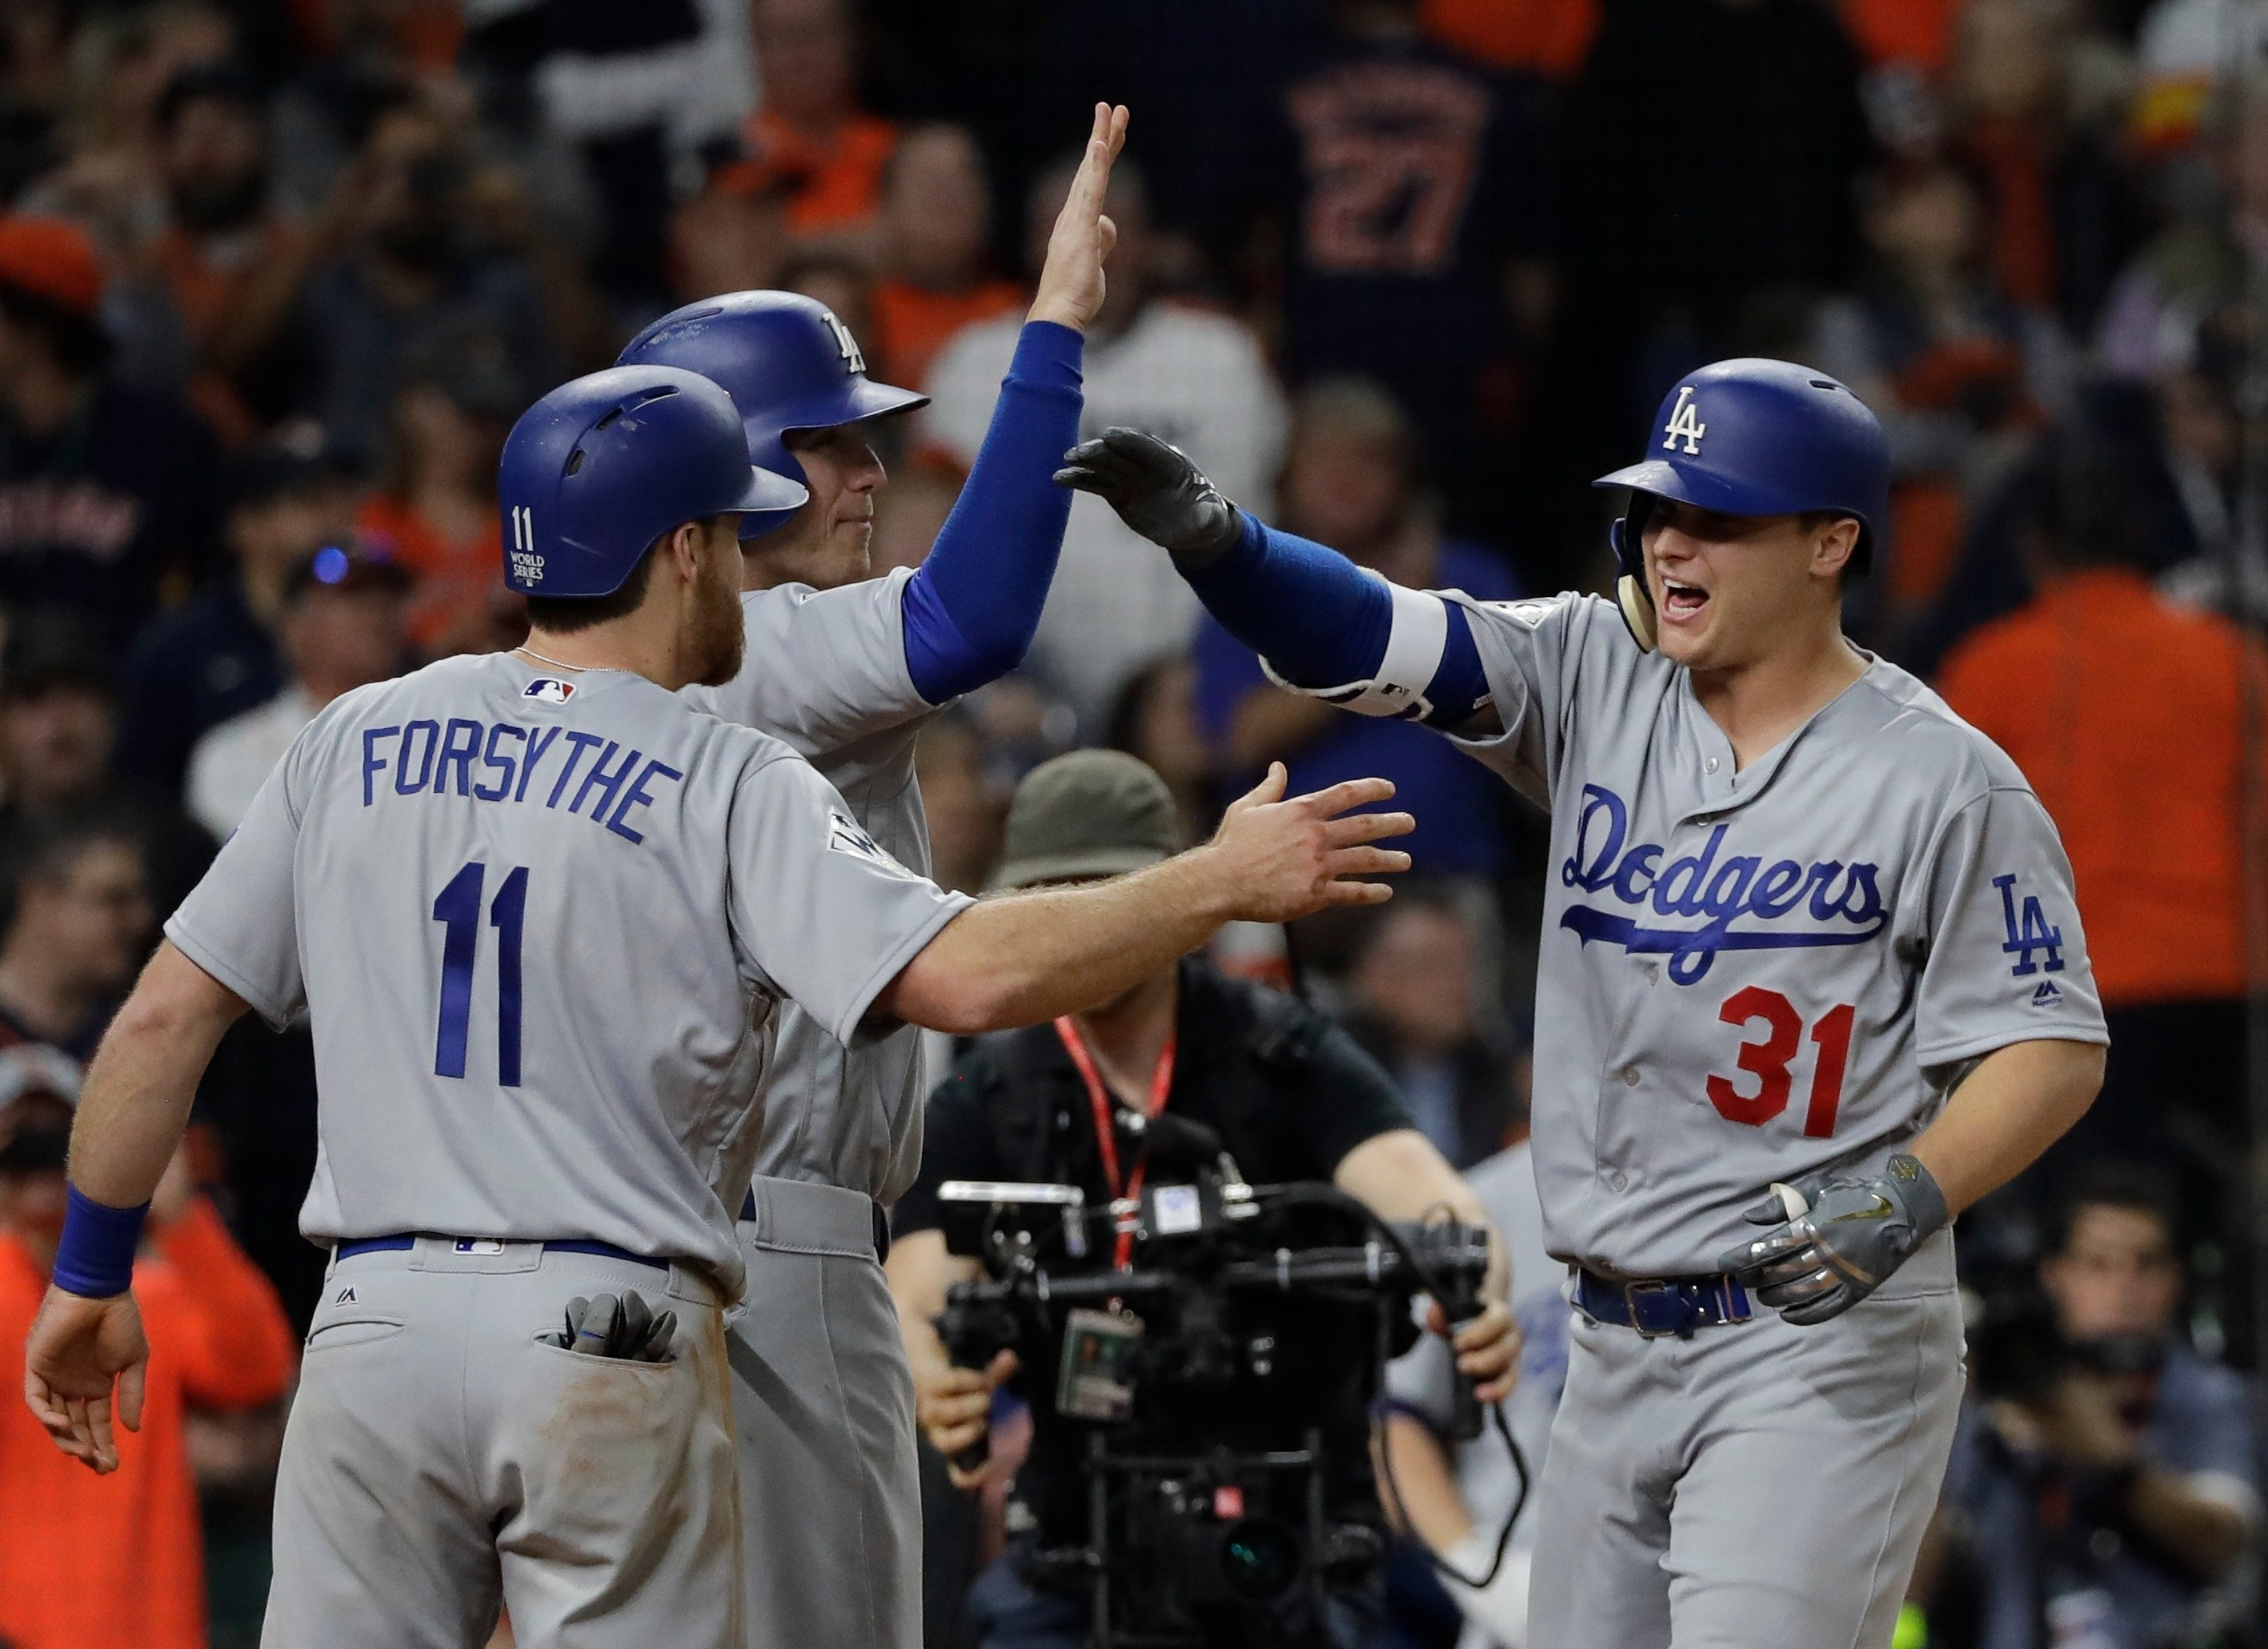 Los Angeles Dodgers' Joc Pederson is congratulated after hitting a three-run home run during the ninth inning of Game 4 of baseball's World Series against the Houston Astros Saturday, Oct. 28, 2017, in Houston. (AP Photo/David J. Phillip)